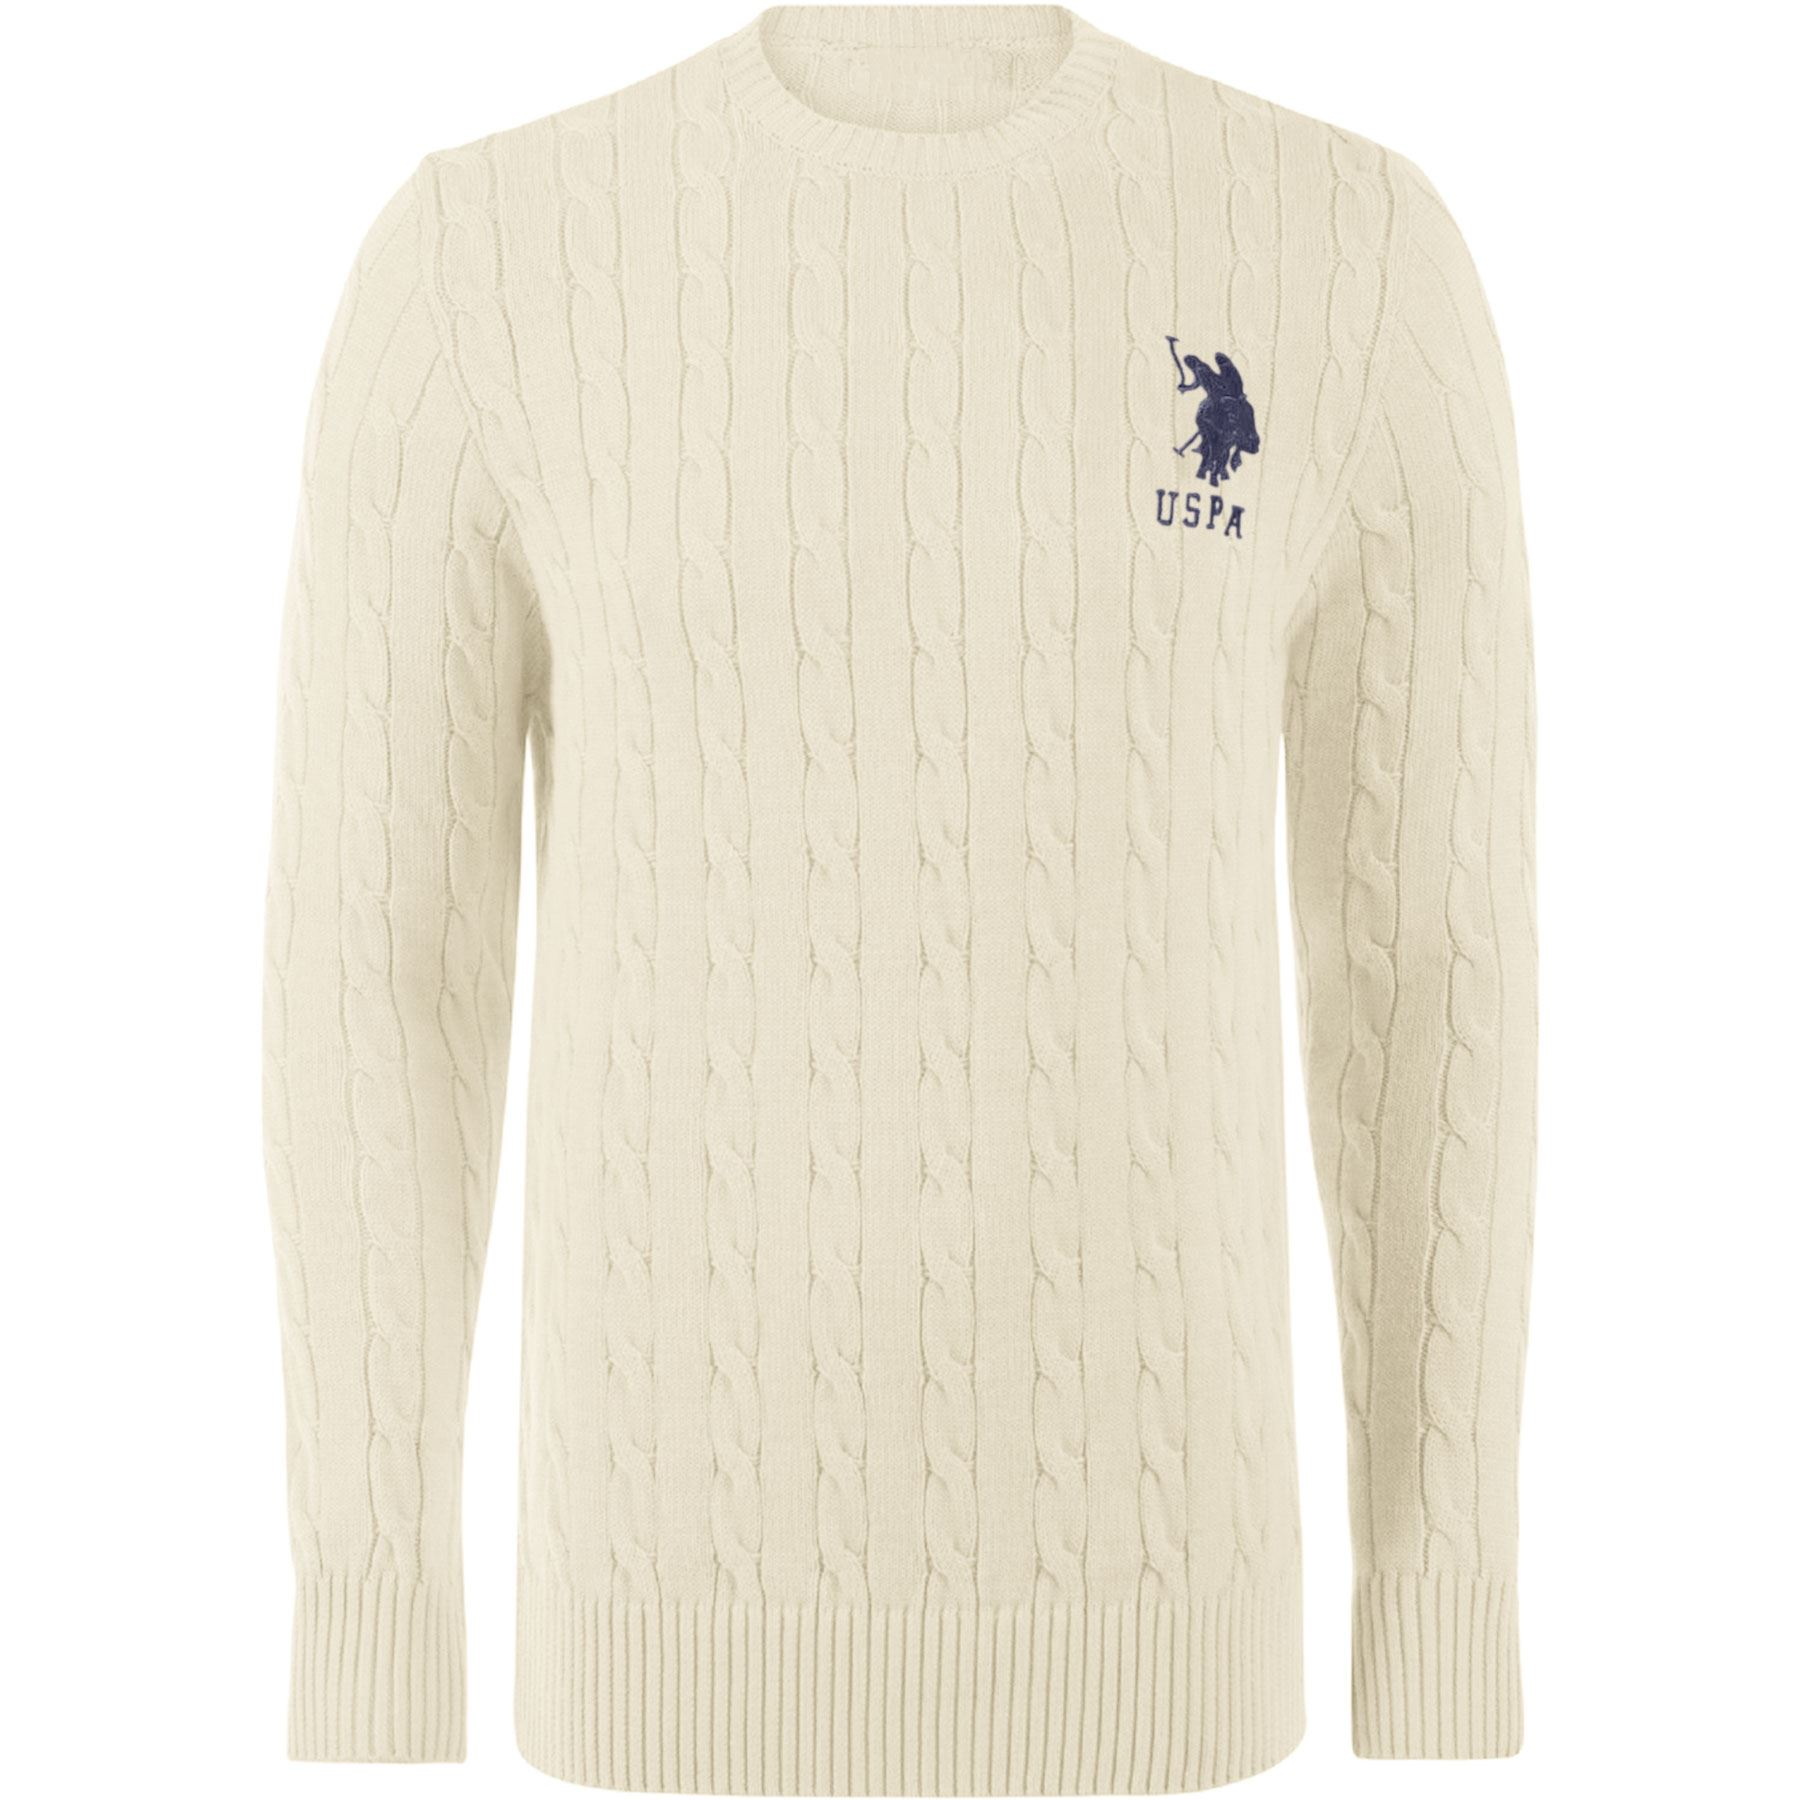 NEW-MENS-LONG-SLEEVE-CABLE-HEAVY-KNITTED-JUMPER-SWEATER-CREW-NECK-WARM-WINTER